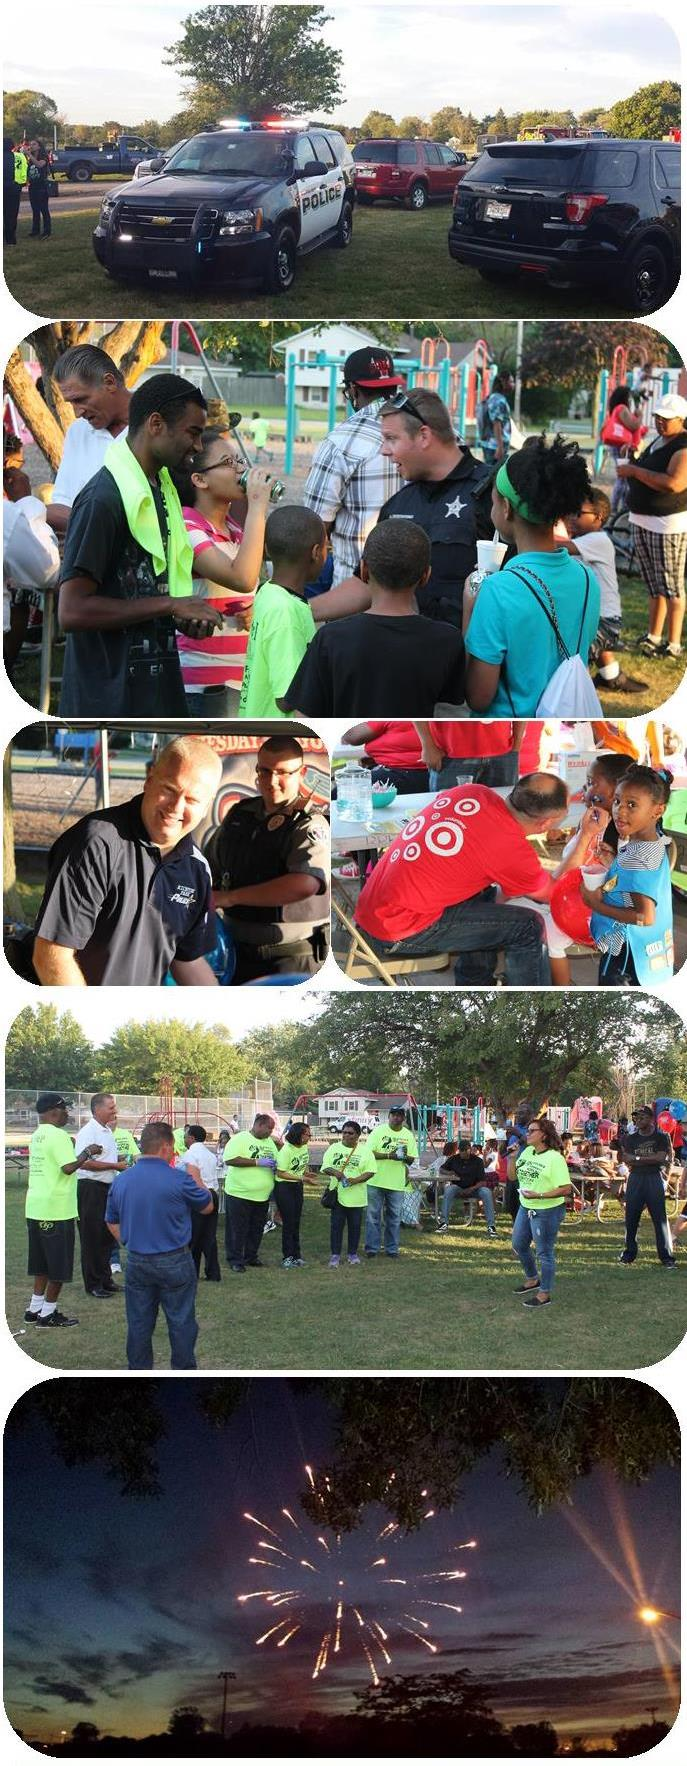 National Night Out - Event Pic Collage